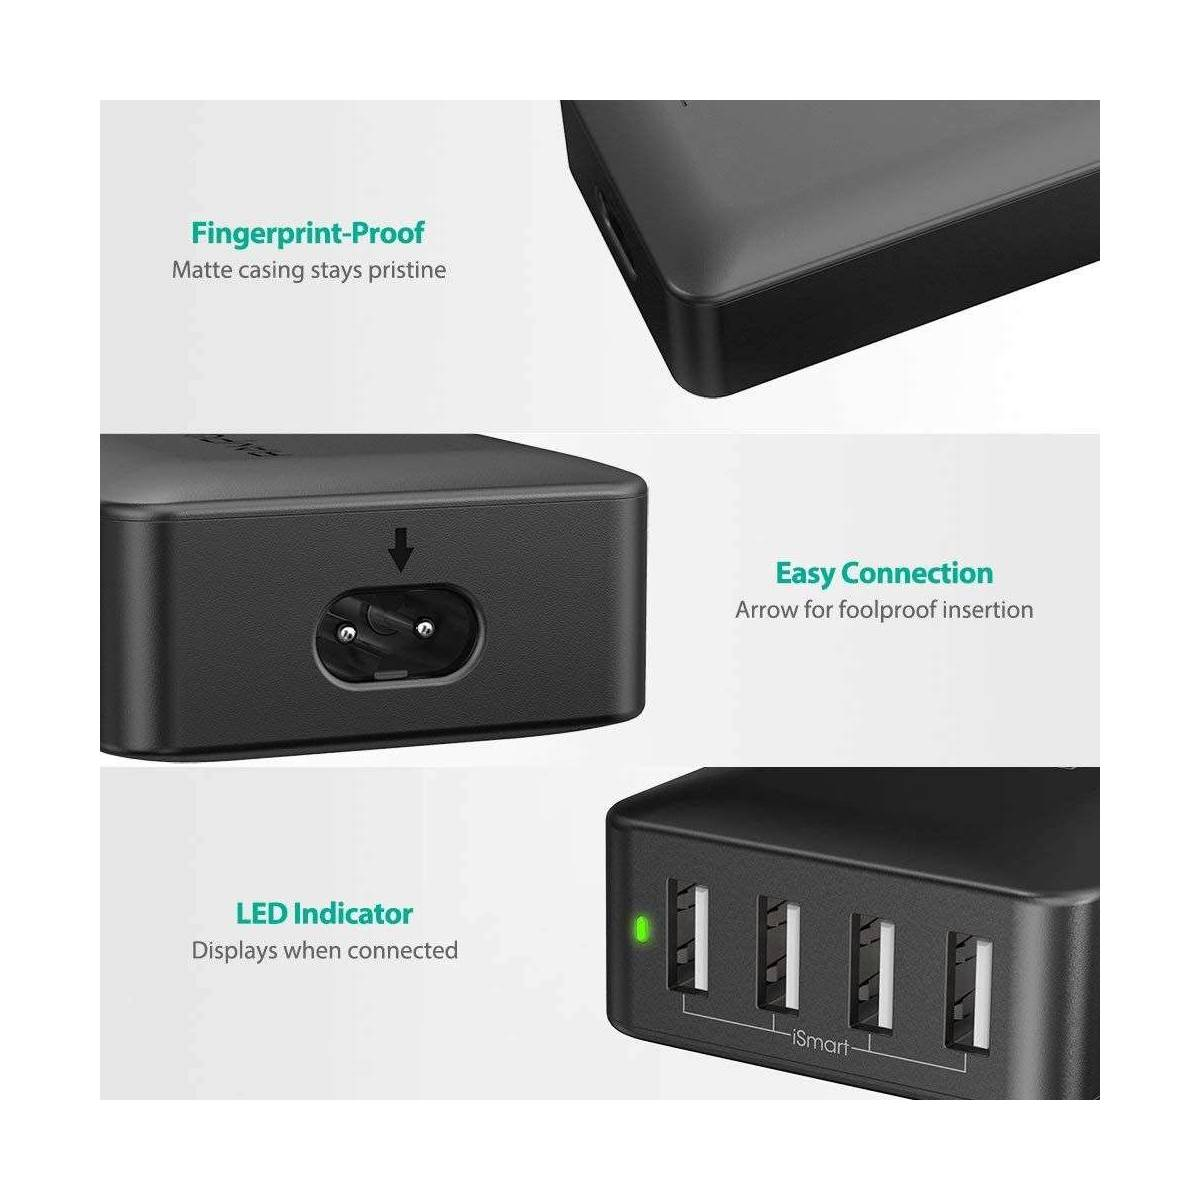 RAVPower 40W 8A 4 port USB Hub laddare iSmart 2.0, Svart